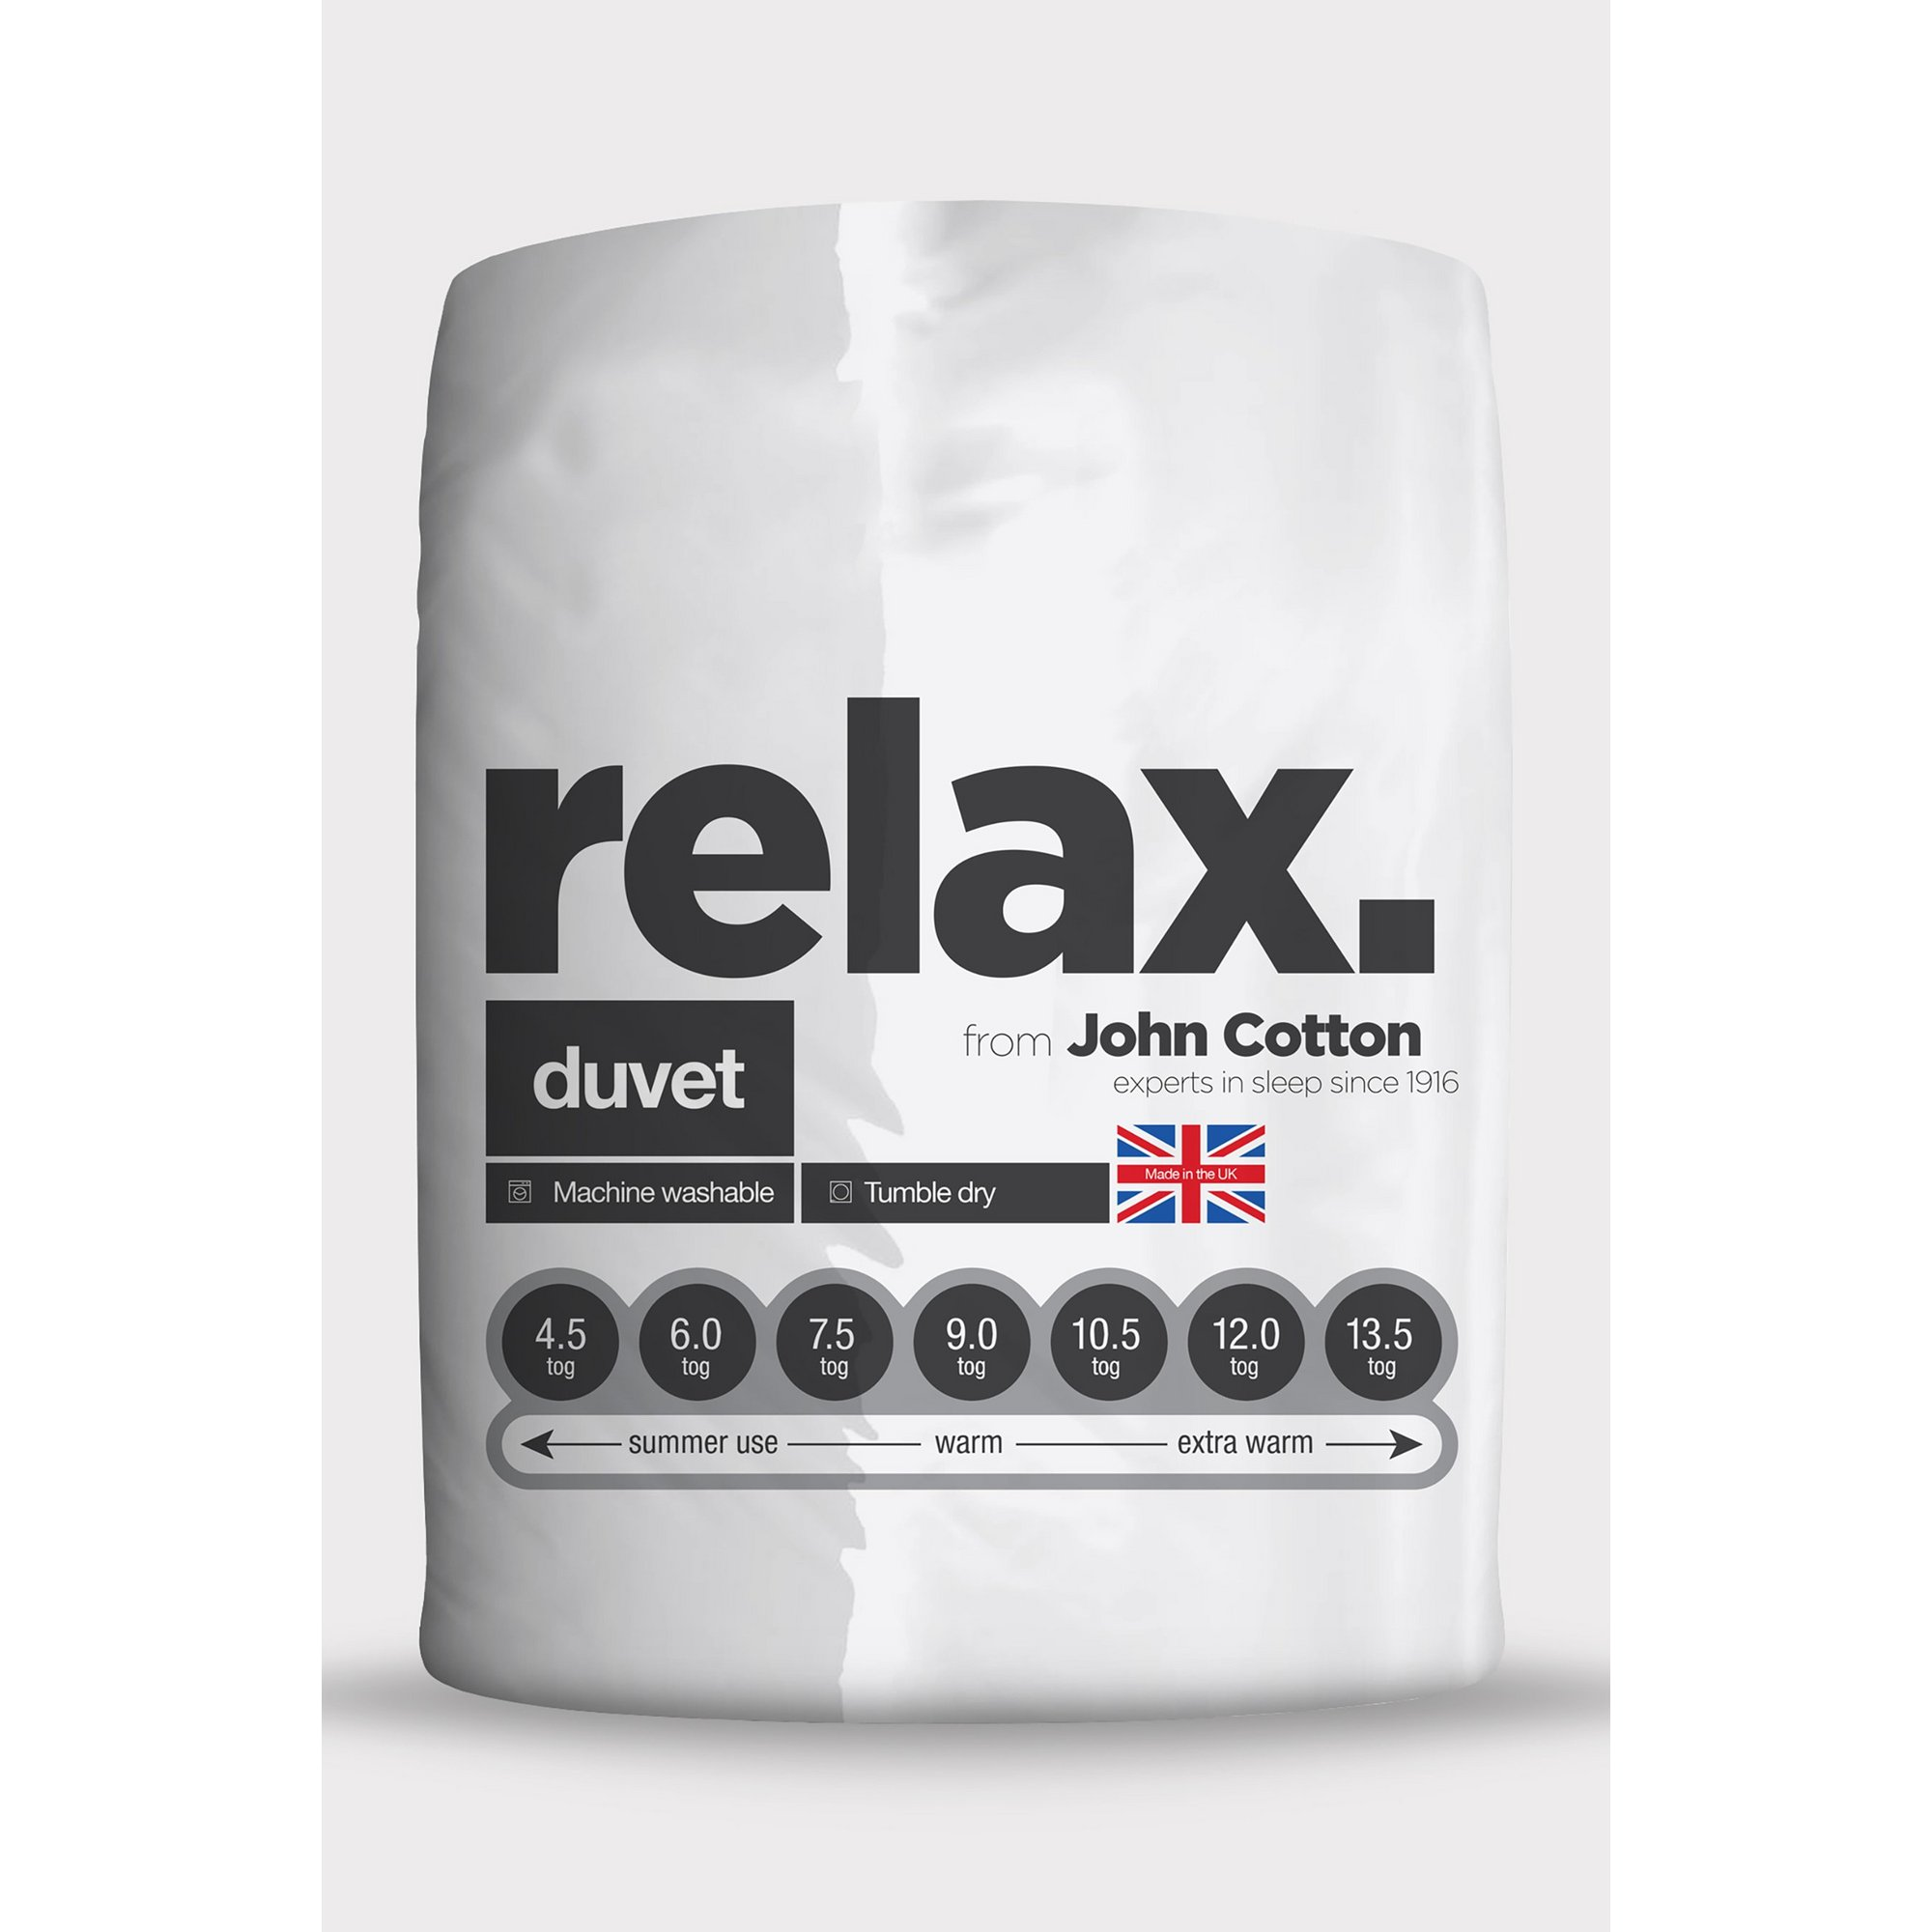 Image of Relax Duvet 10.5 Tog